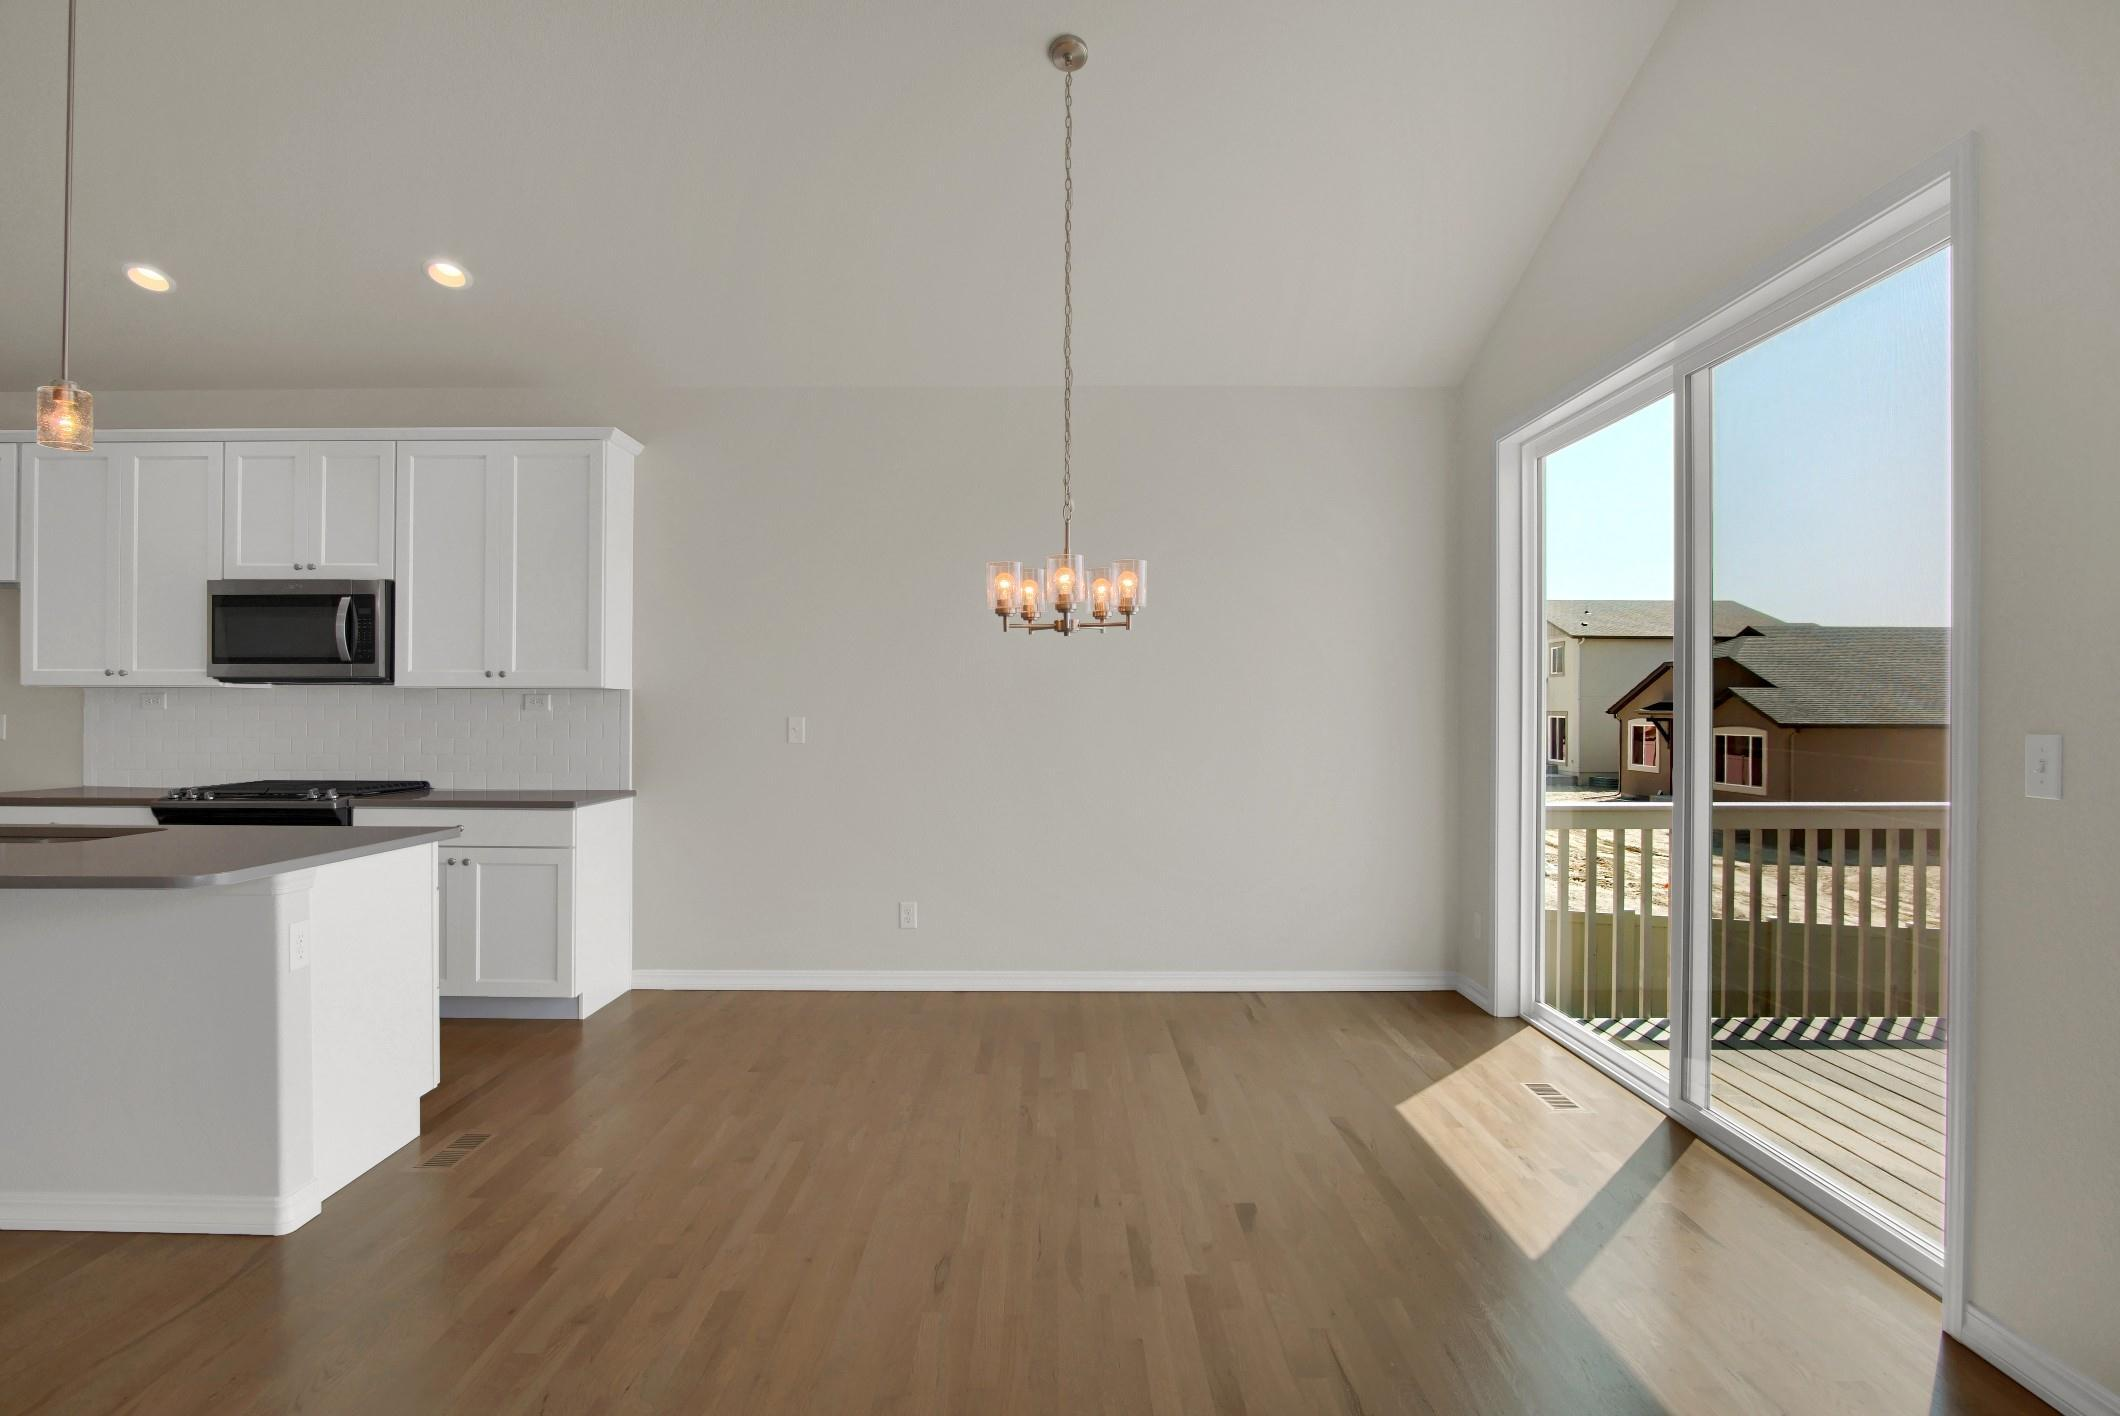 Kitchen featured in the Telluride By Keller Homes in Colorado Springs, CO